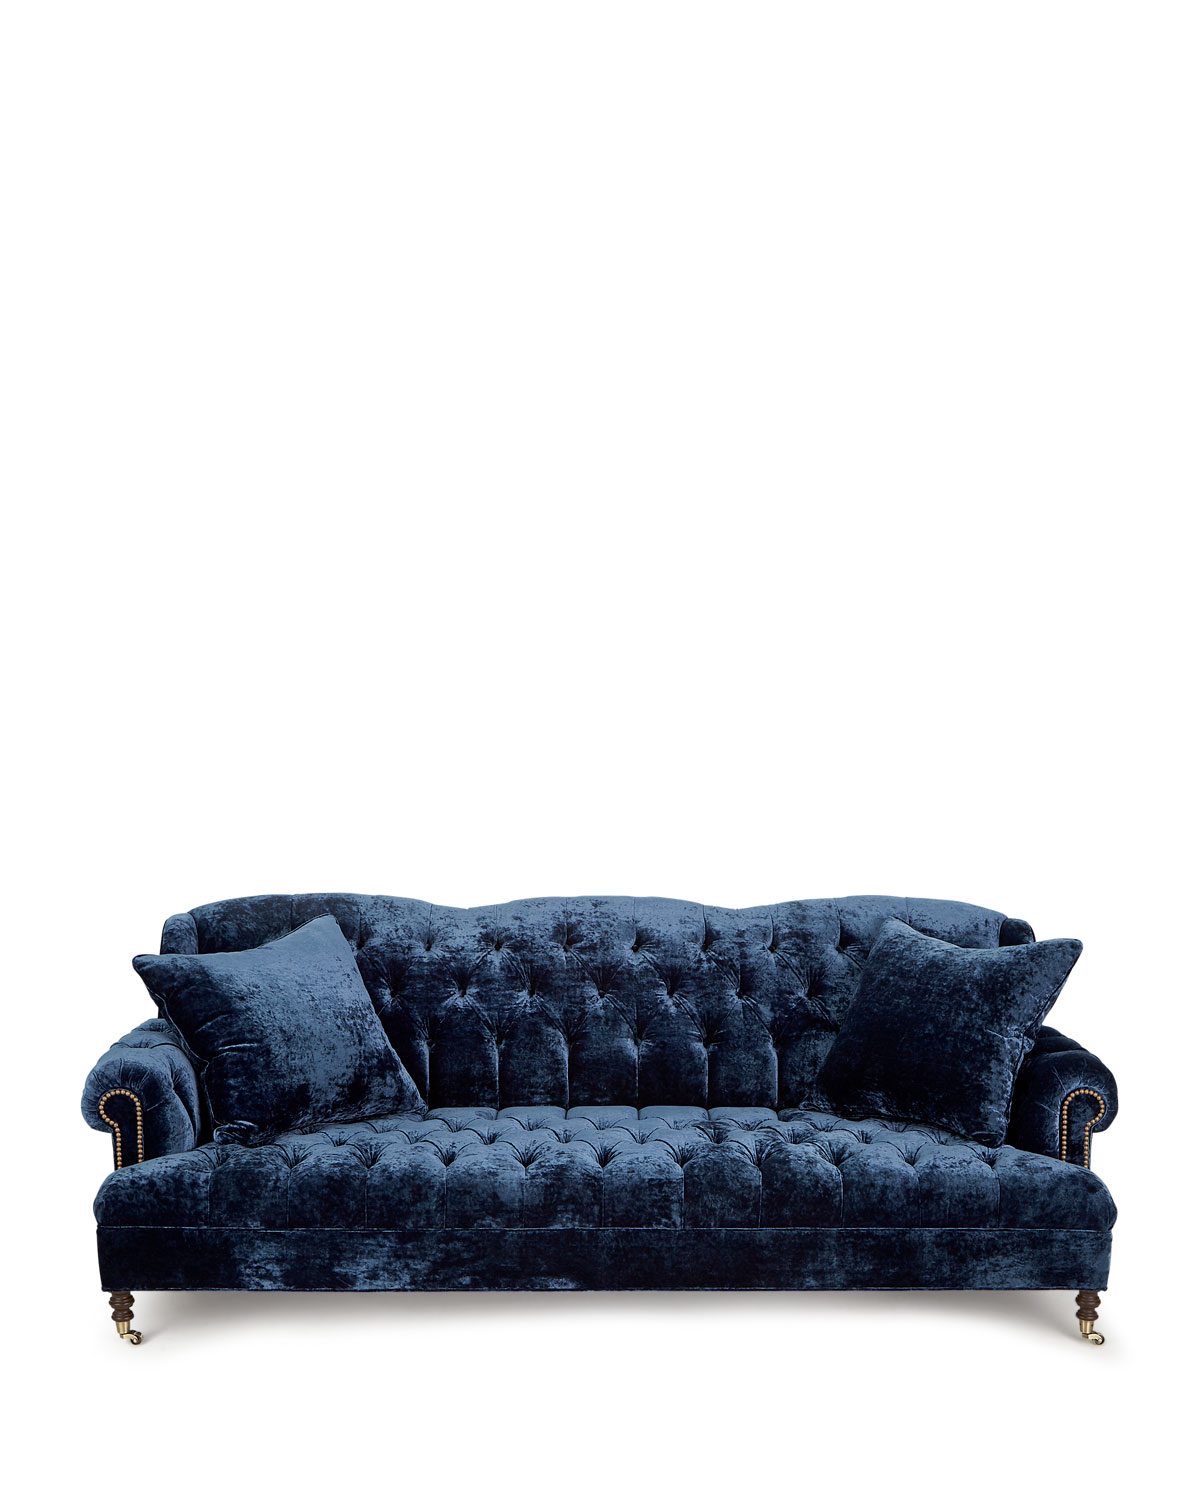 Bz Futon Divine Tufted Crushed Velvet Sofa 77